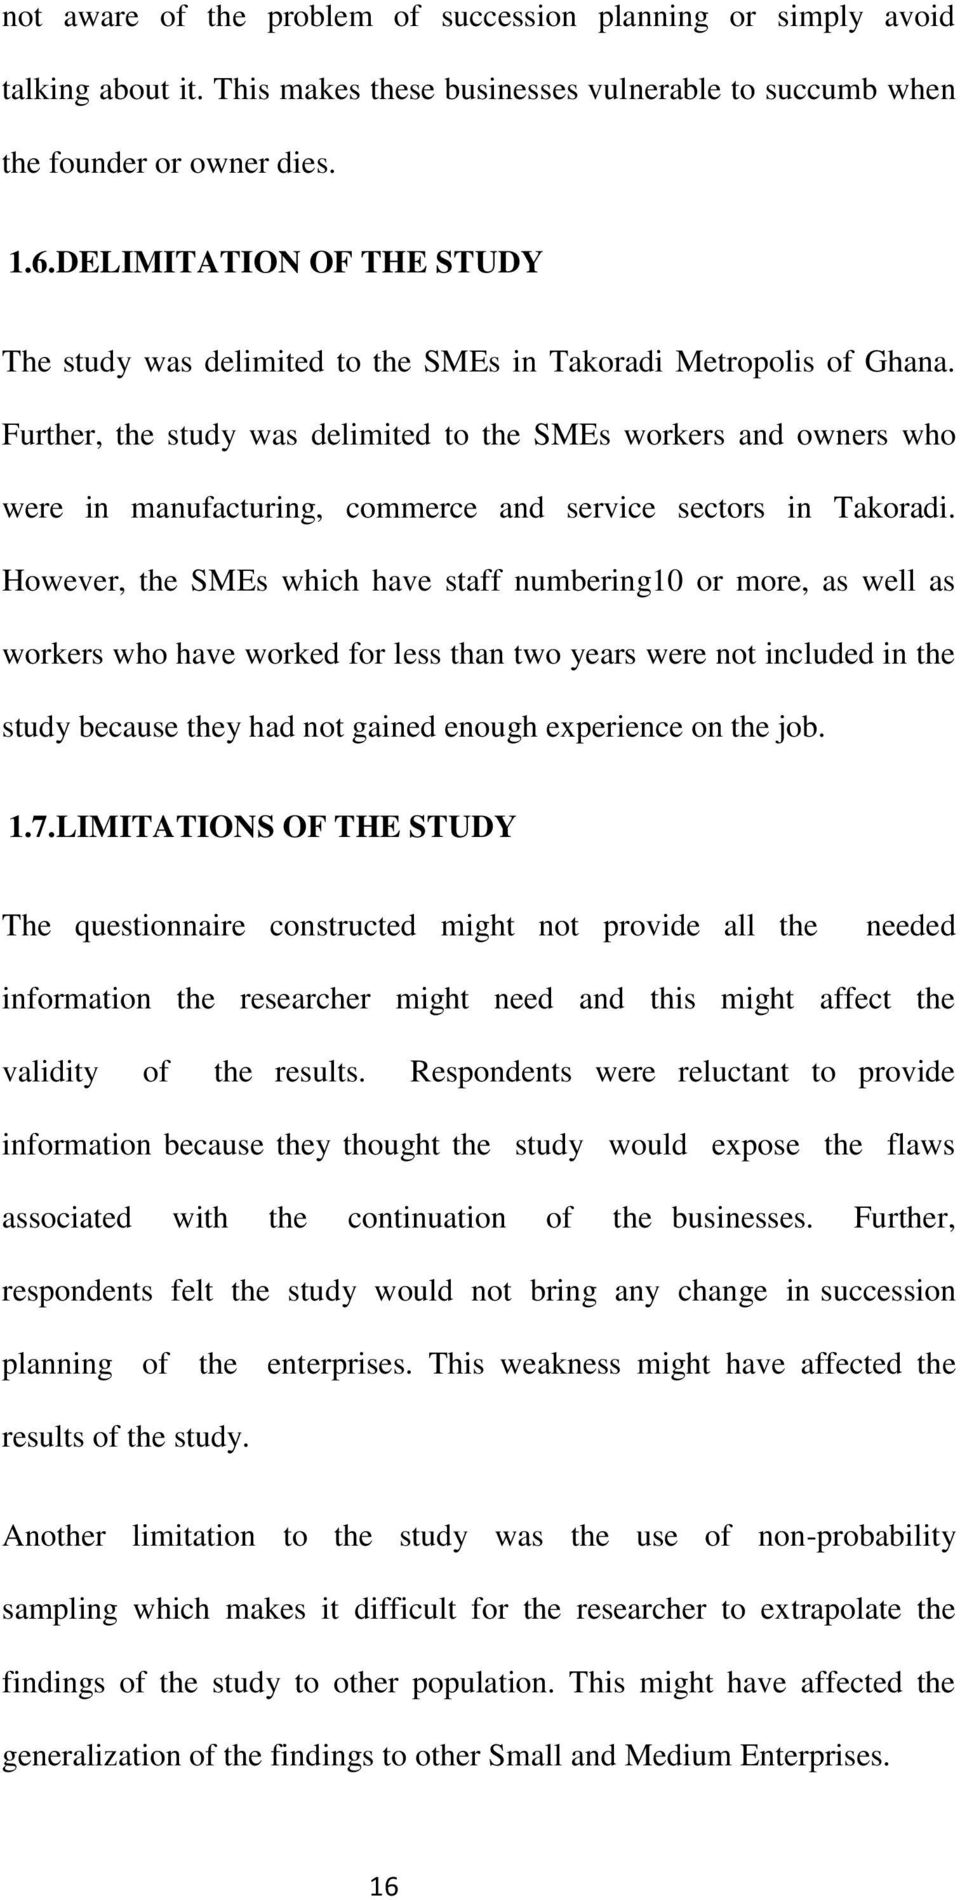 Further, the study was delimited to the SMEs workers and owners who were in manufacturing, commerce and service sectors in Takoradi.